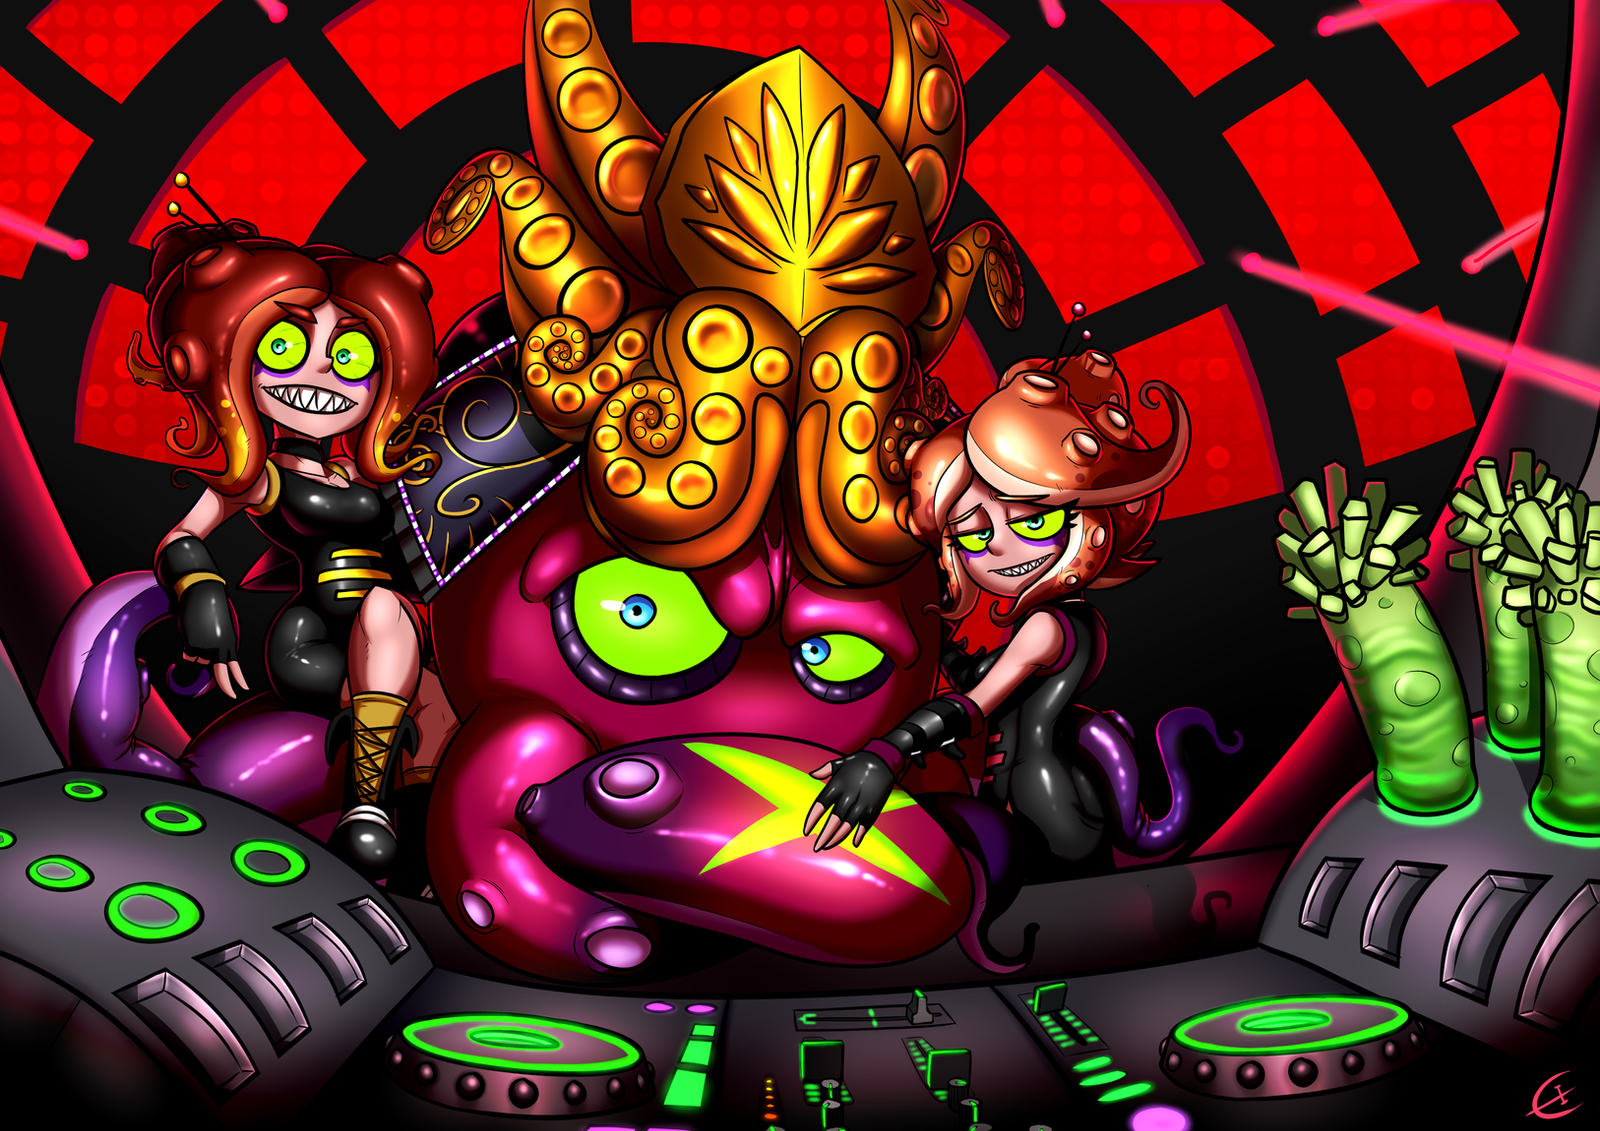 DJ Octavio and the Octo Sisters by efrejok